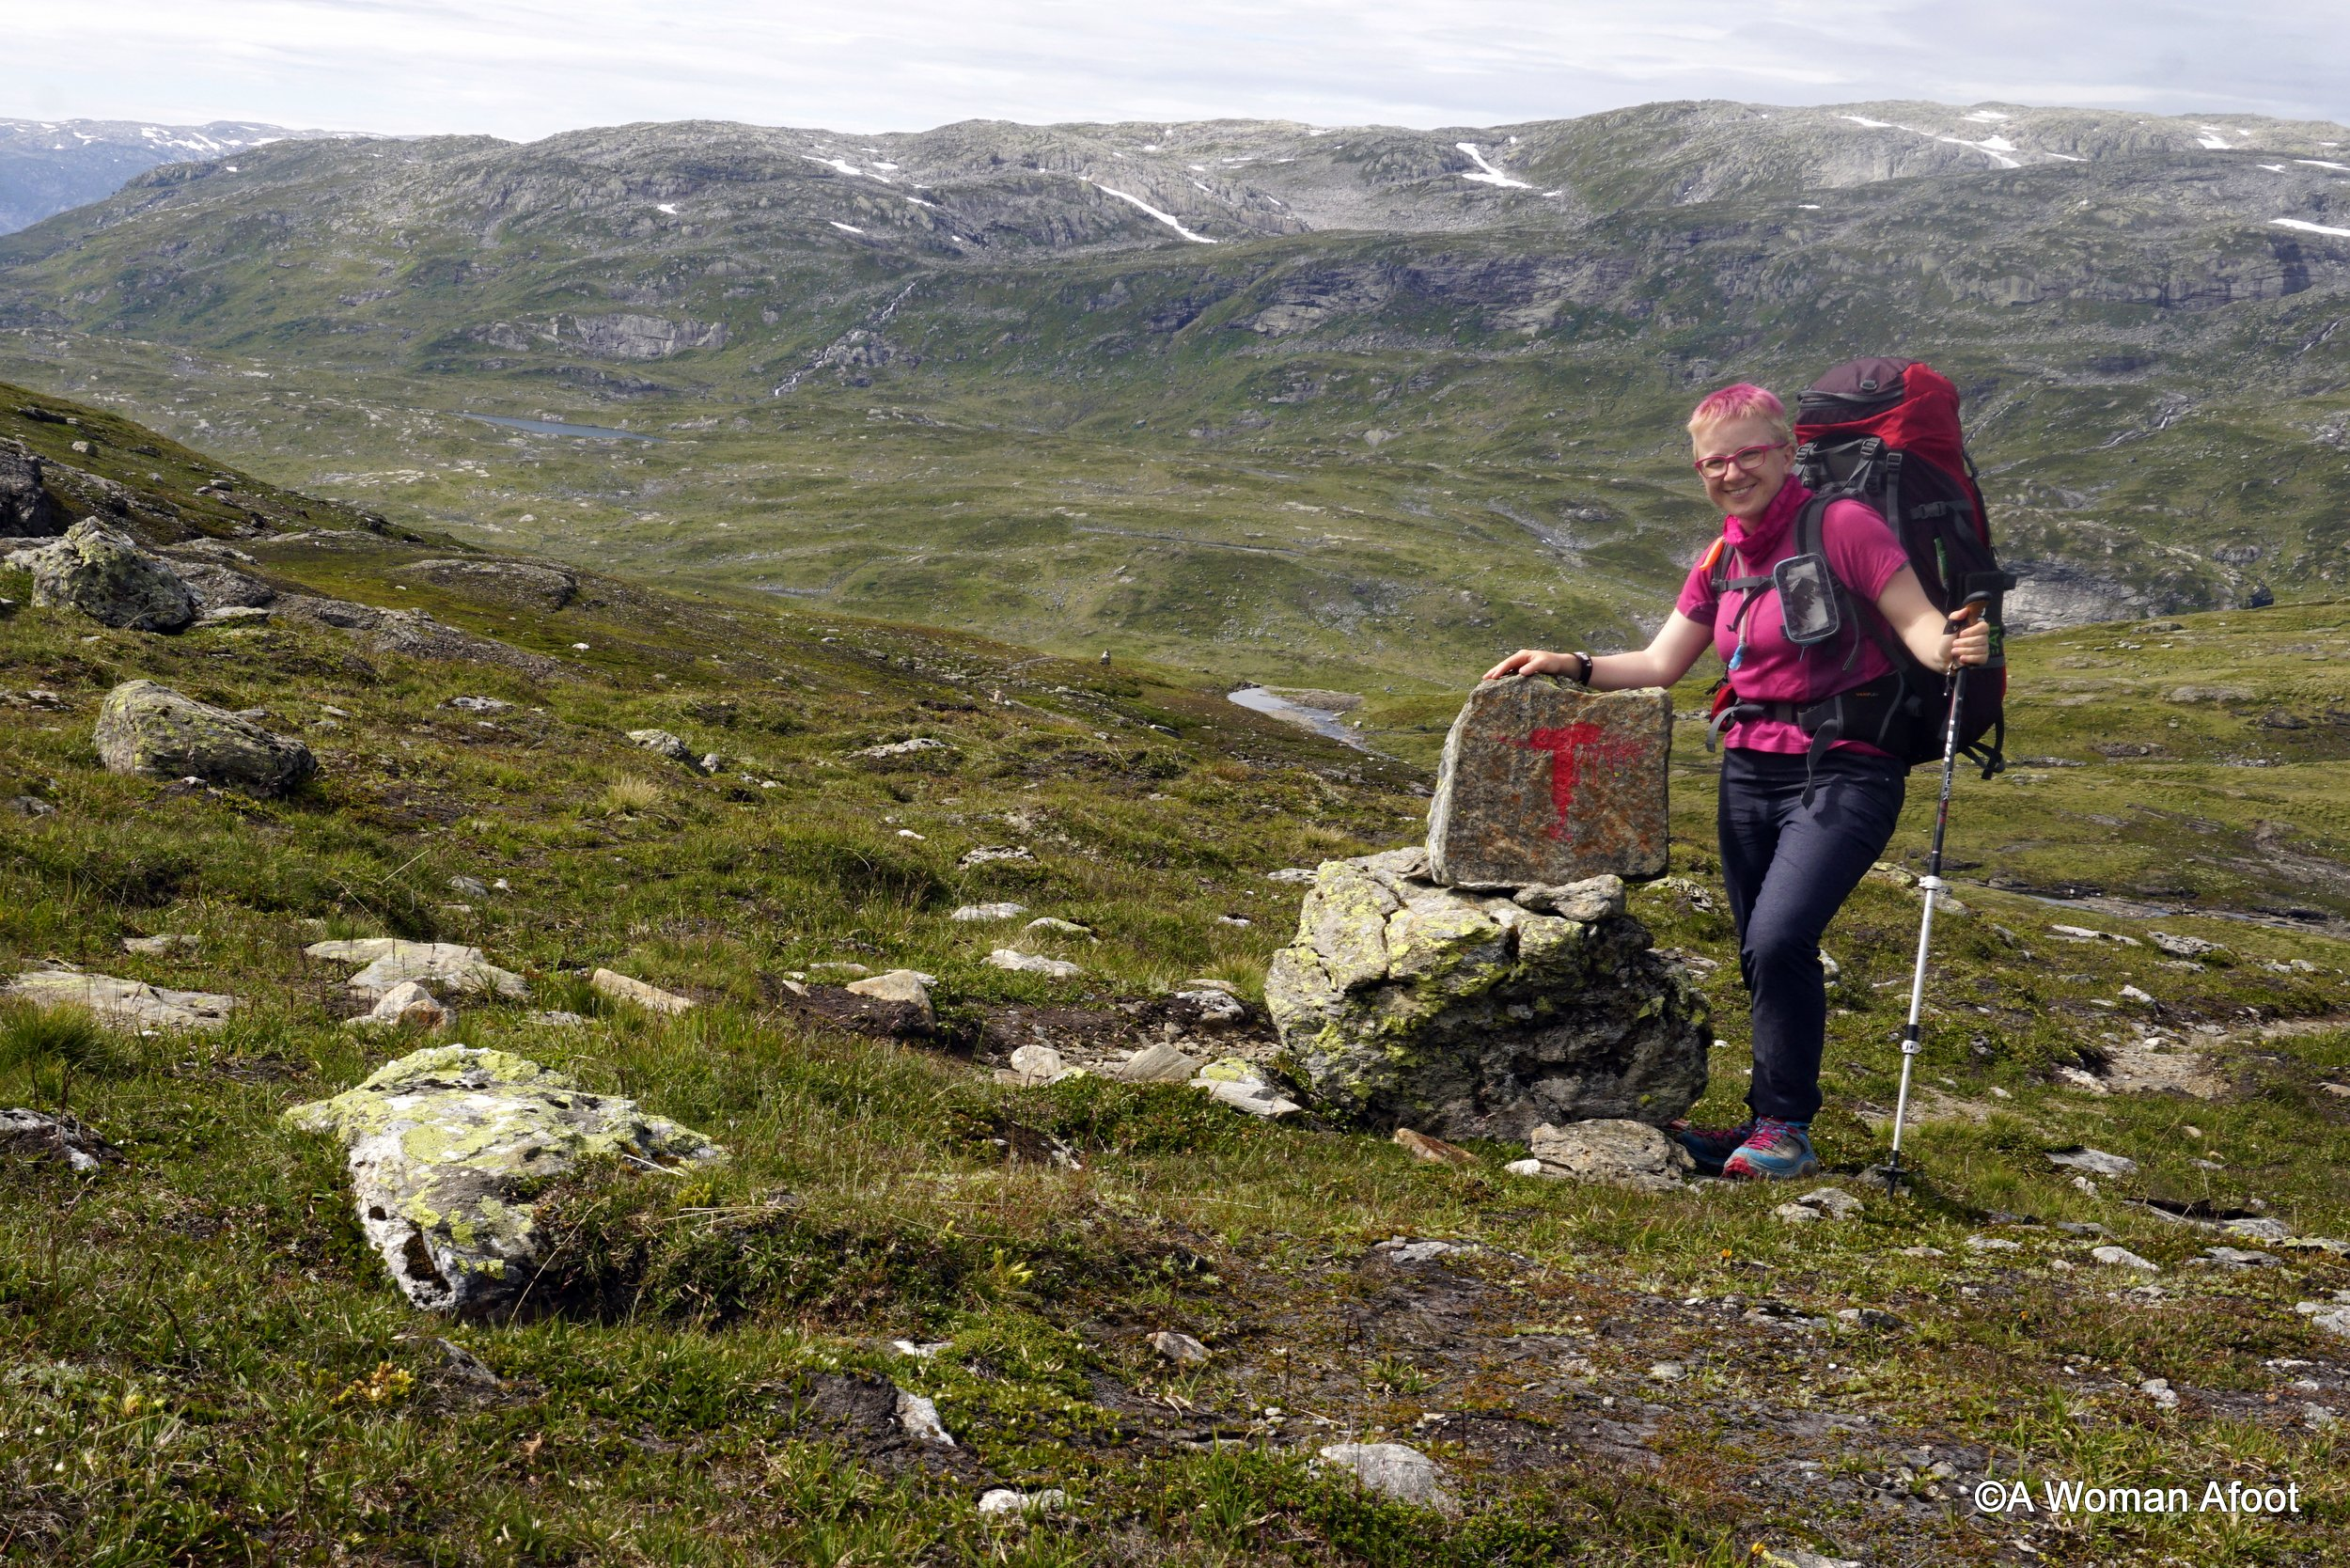 Setting out from the adventure capitol in Voss, I take you on a fantastic solo hike through the Norwegian mountains. From Voss and Bjergane to Solrenningen, this area has it all: snow-covered peaks, waterfalls, crystal-clear lakes, and charming mountain shelters - learn more @ awomanafoot.com! Hiking solo in Norway | Hiking destinations in Europe | Great trails in Scandinavia | Female solo hiking in Europe | Solo travel destinations | Wild camping in Norway | Norwegian mountains | What to do in Norway | #Hiking #Camping #Norway #Trails #SoloHiking #FemaleSoloTravel #Adventure